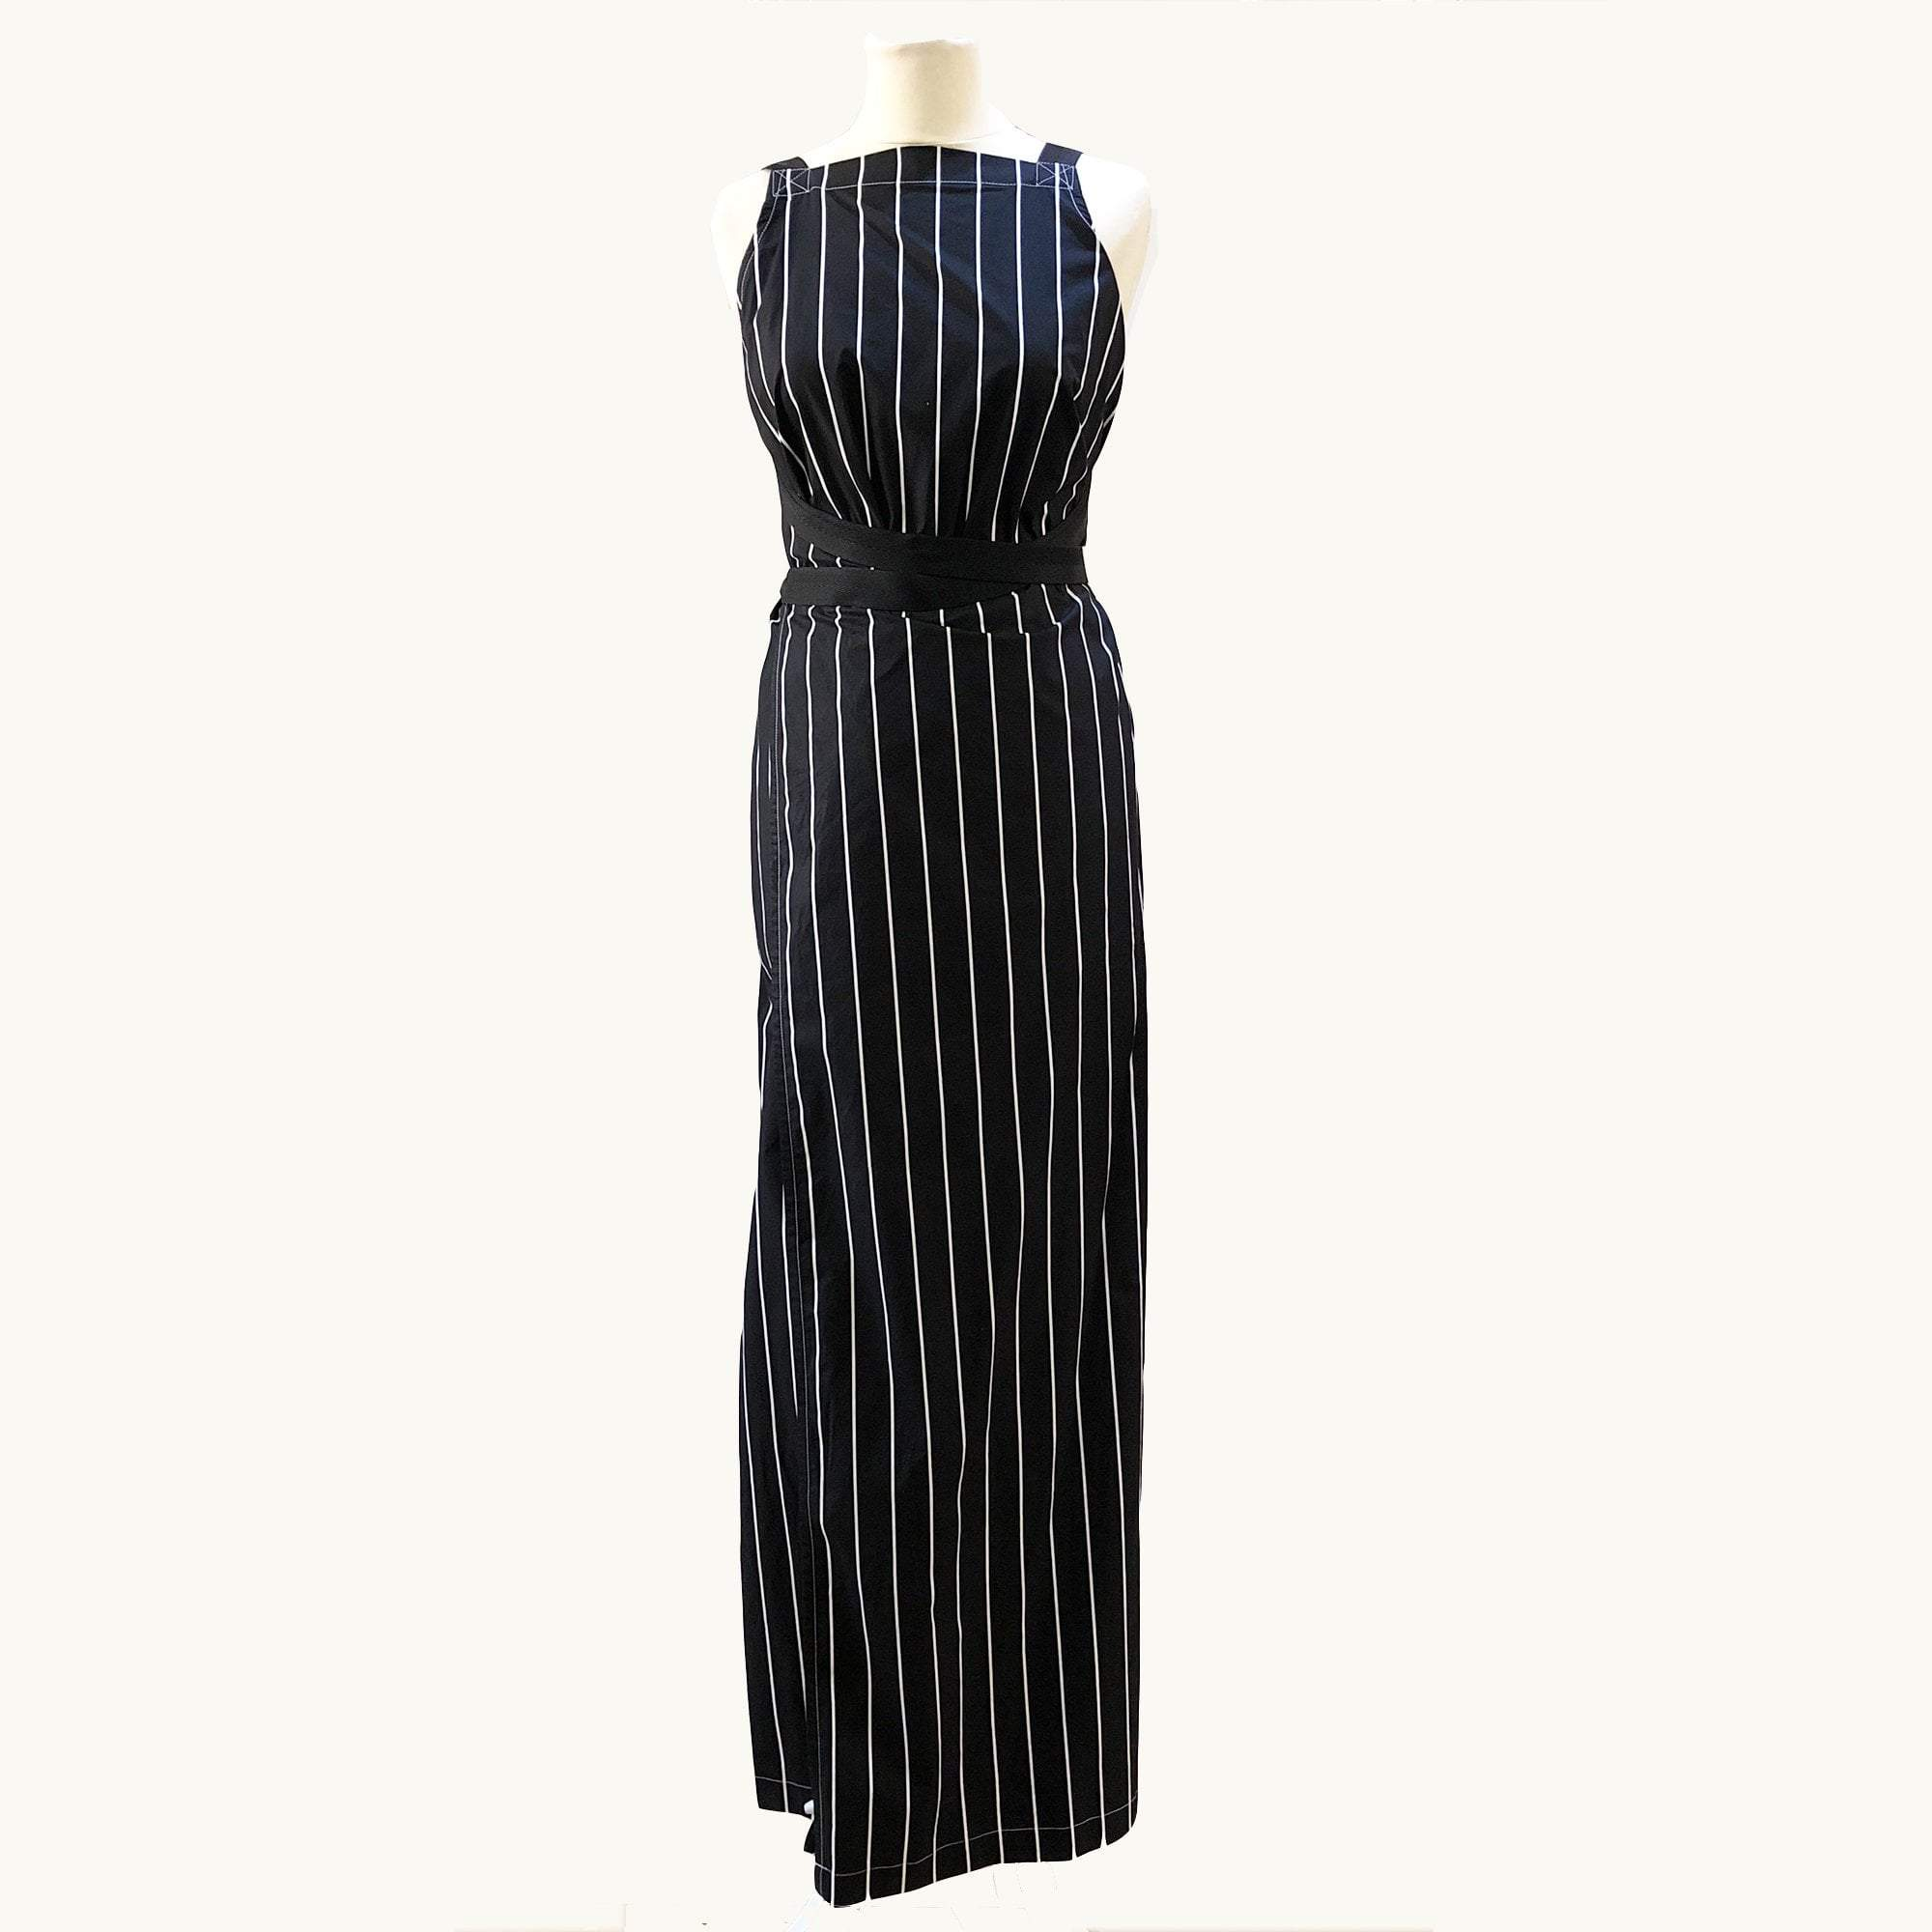 Balenciaga Striped Wrap Around Dress